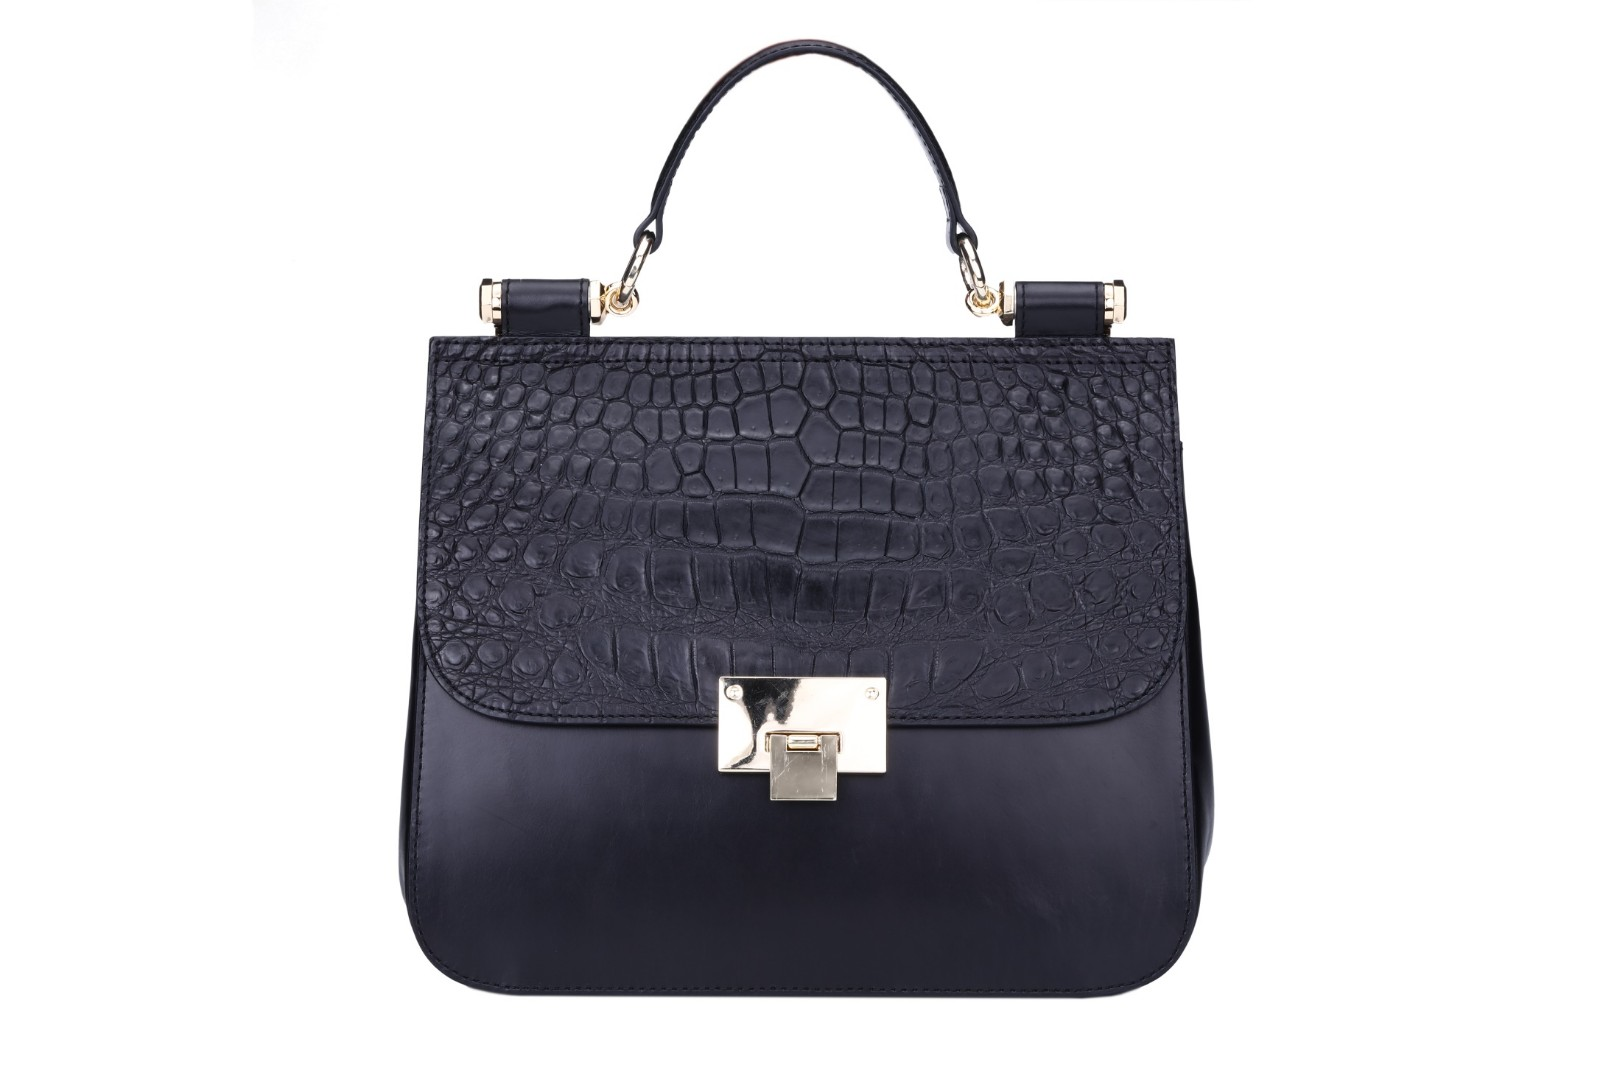 GF bags-Professional Ladies Bag Affordable Handbags From Gaofeng Bags-4